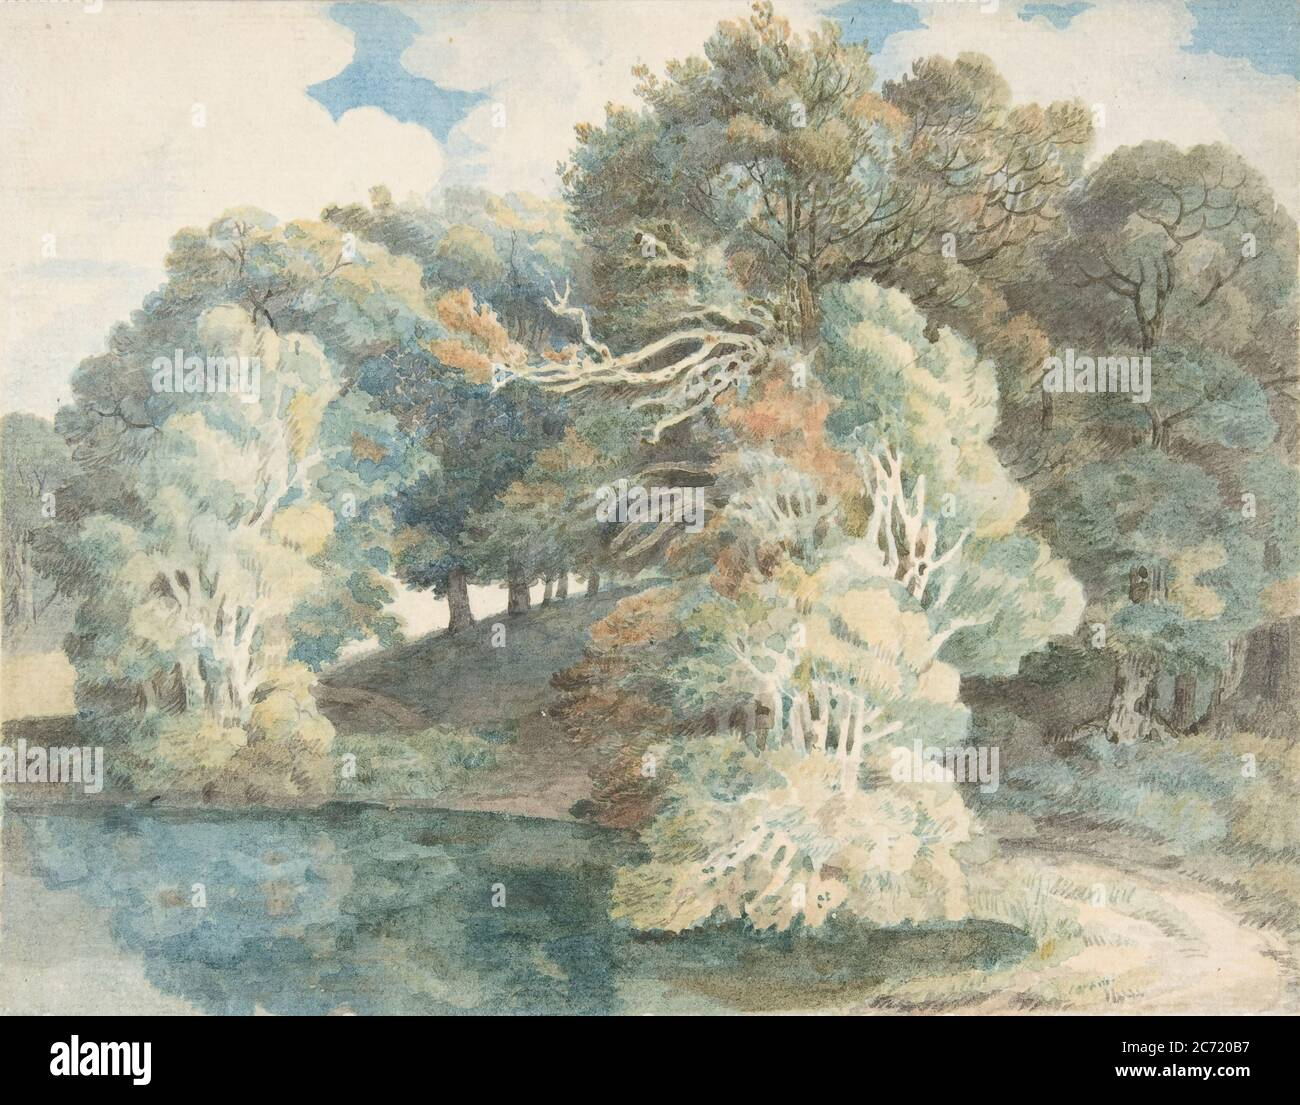 Trees by the Lake, Peamore Park, near Exeter, Devon, 1790-1810. Stock Photo